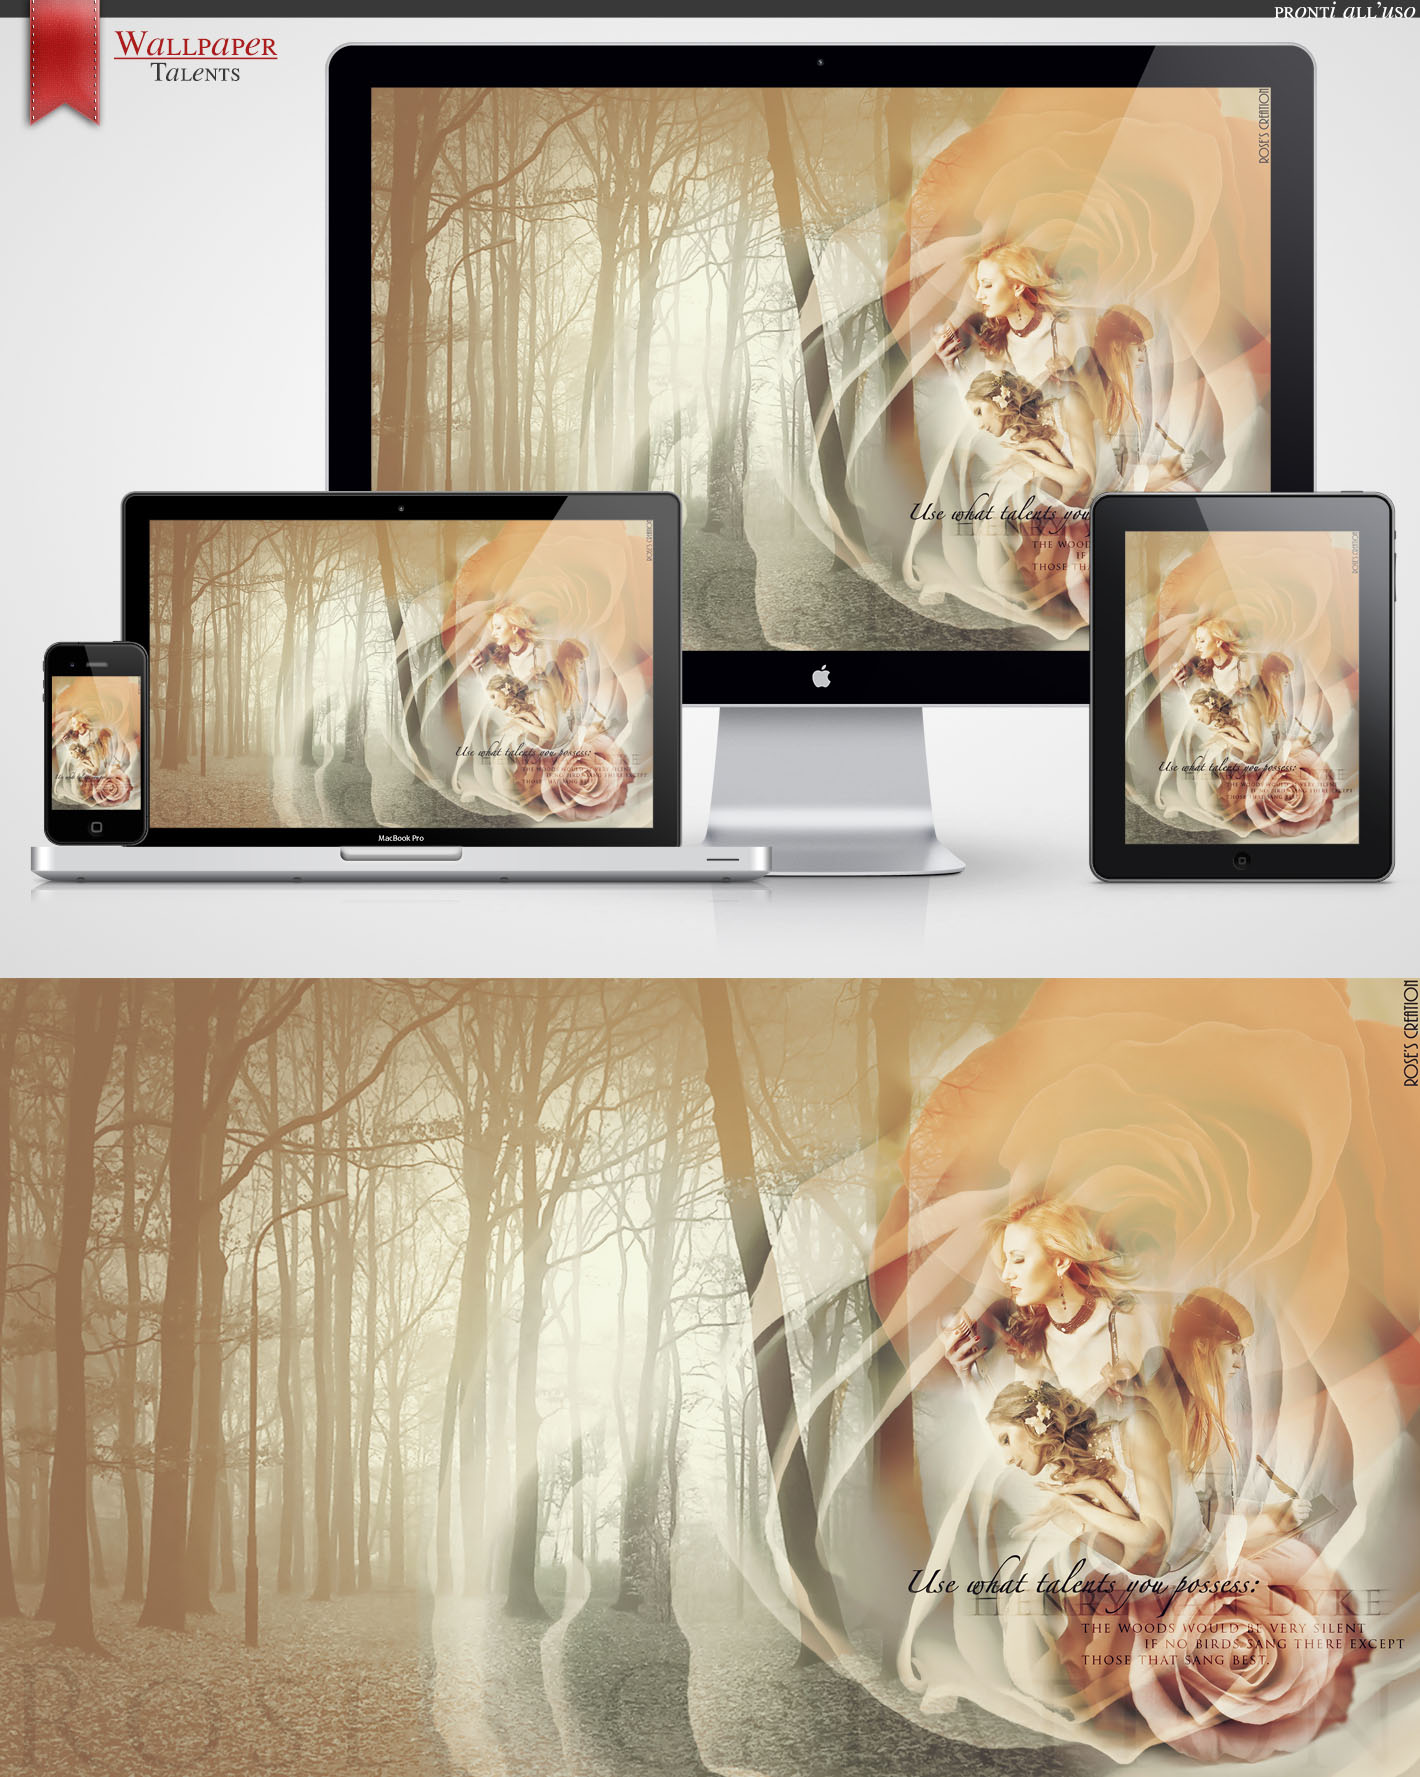 Wallpaper Pack - Talents byRosesCreation by dreamswoman